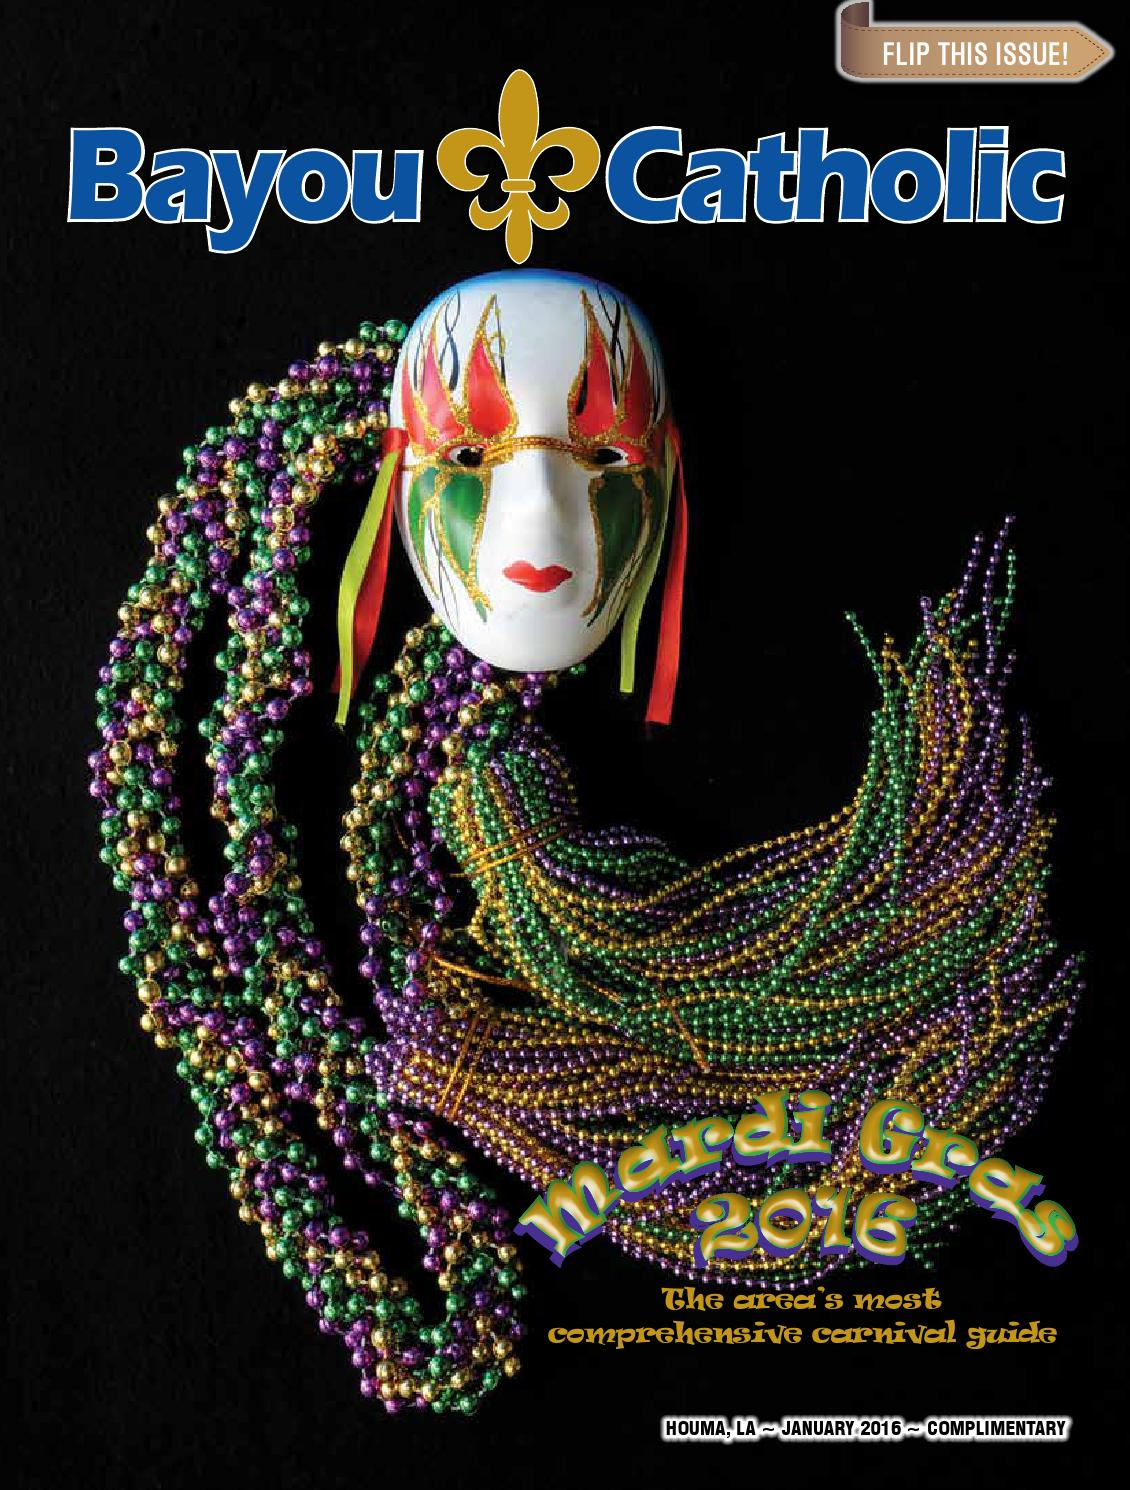 Bayou Catholic January 2016 Mardi Gras By Diocese Of Houma Thibodaux